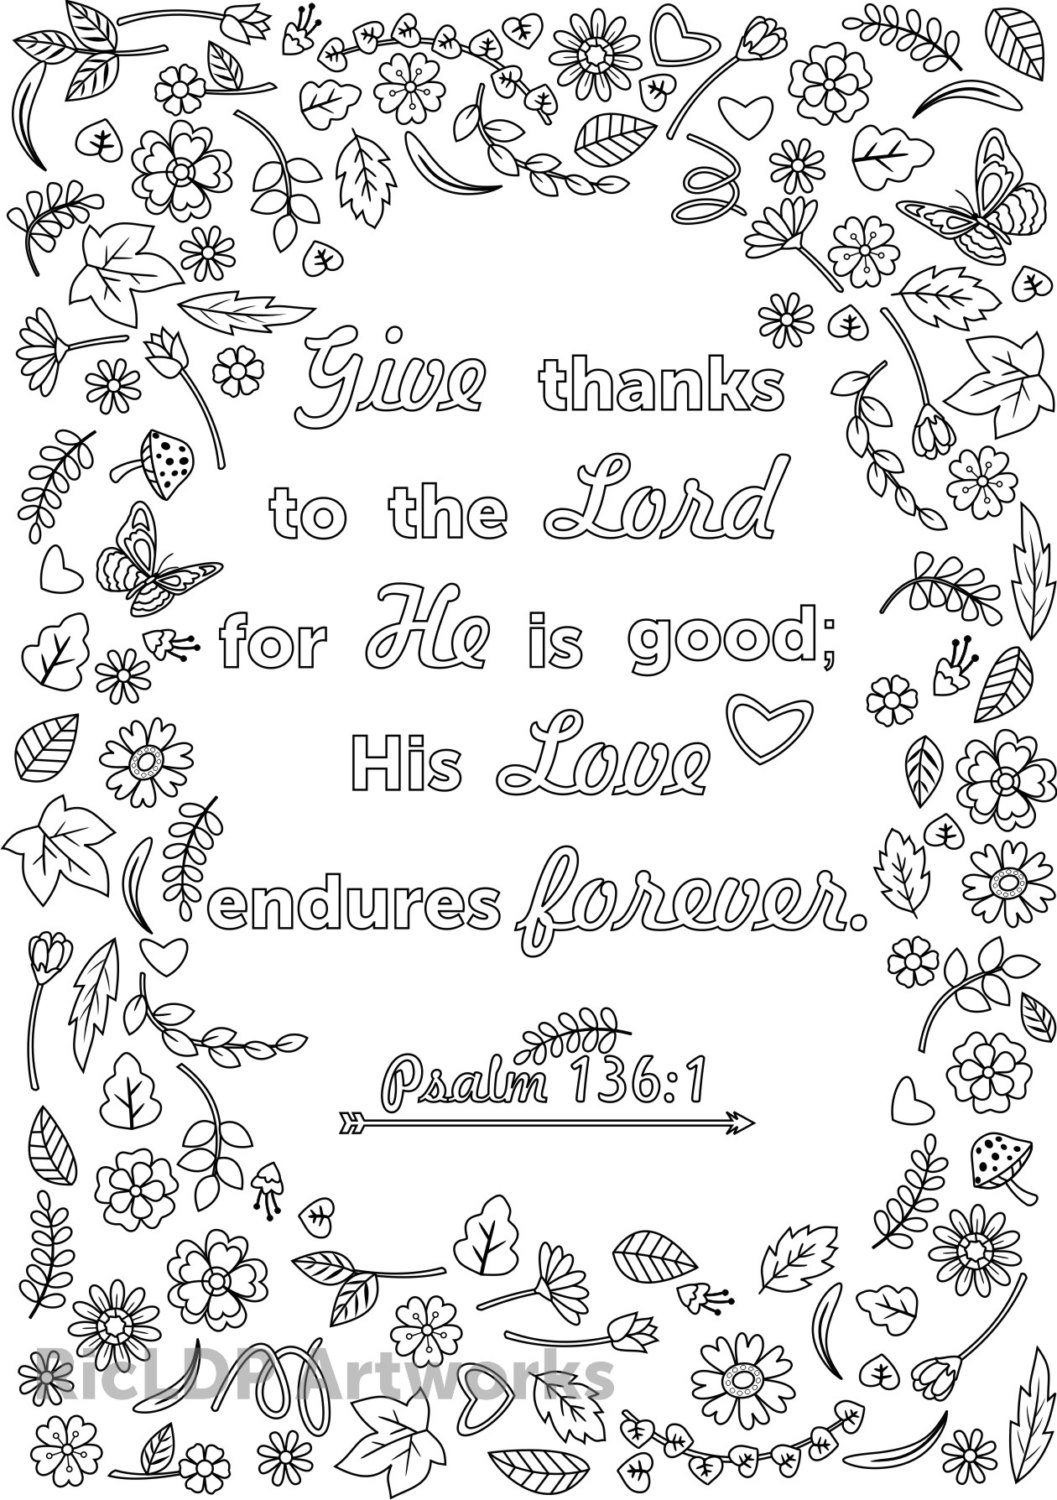 bible verse christian coloring pages image result for christian colour in pictures bible bible verse coloring pages christian